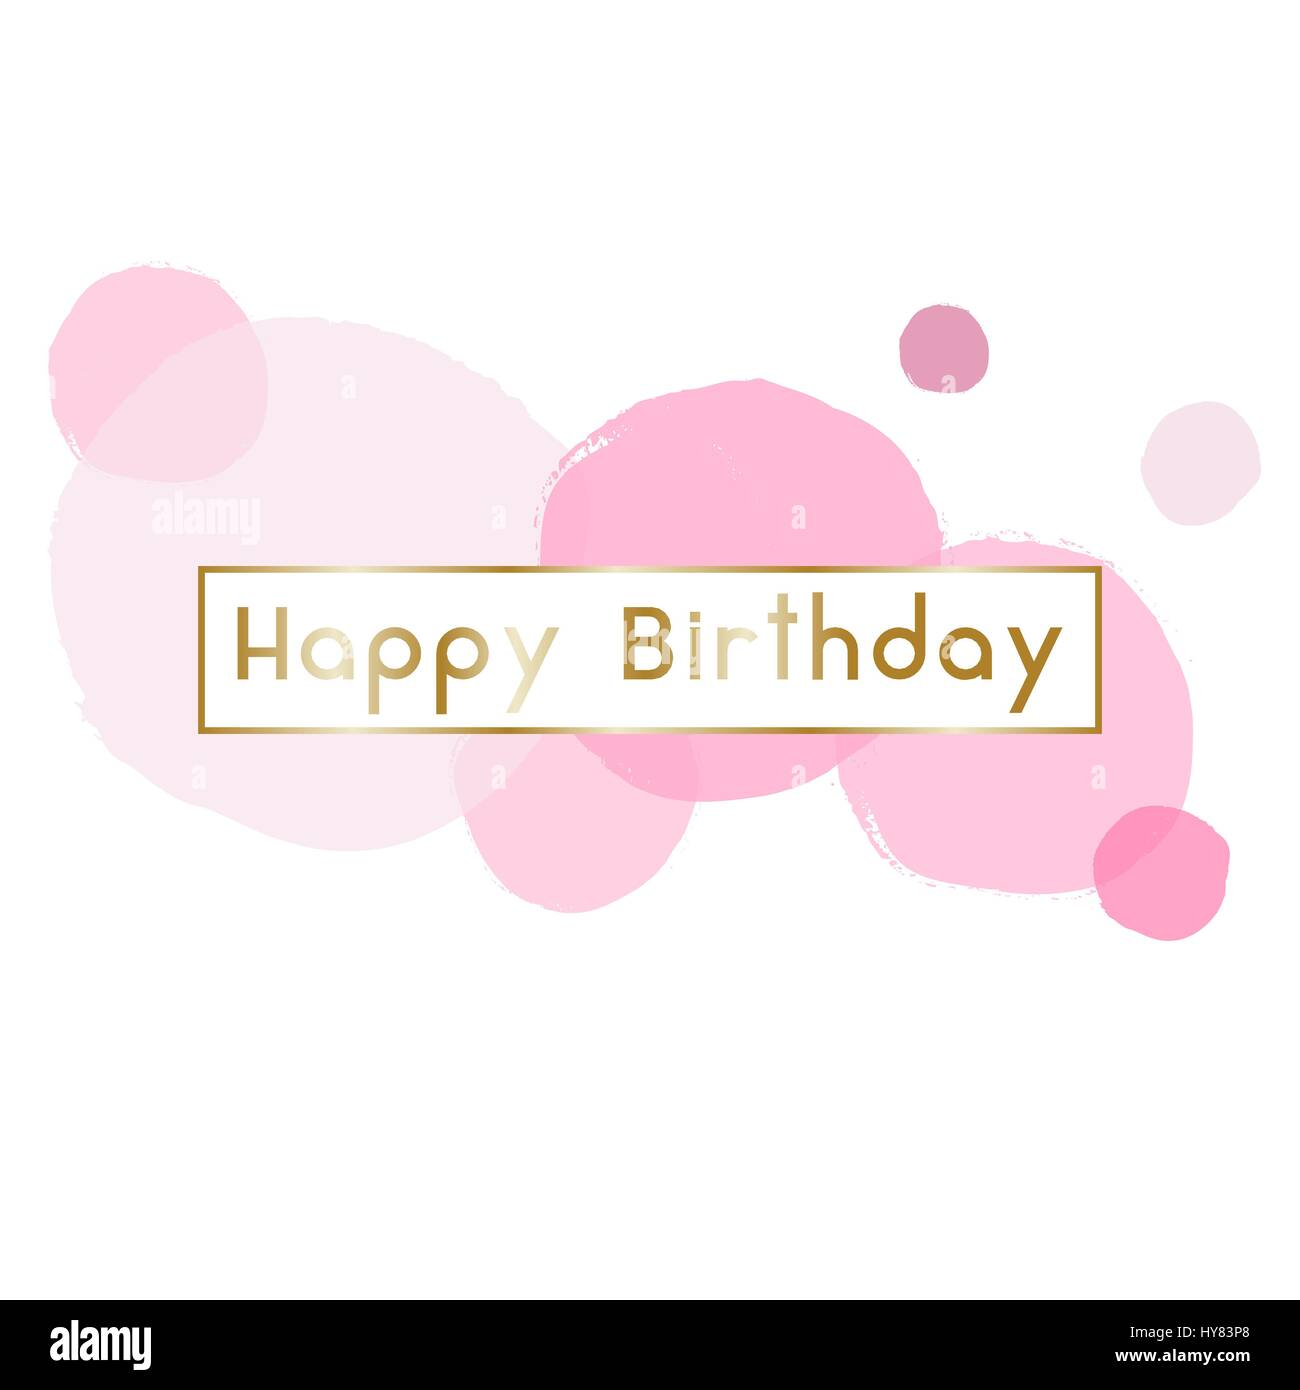 Birthday greeting card design with text happy birthday in gold and birthday greeting card design with text happy birthday in gold and pink bubbles in the background m4hsunfo